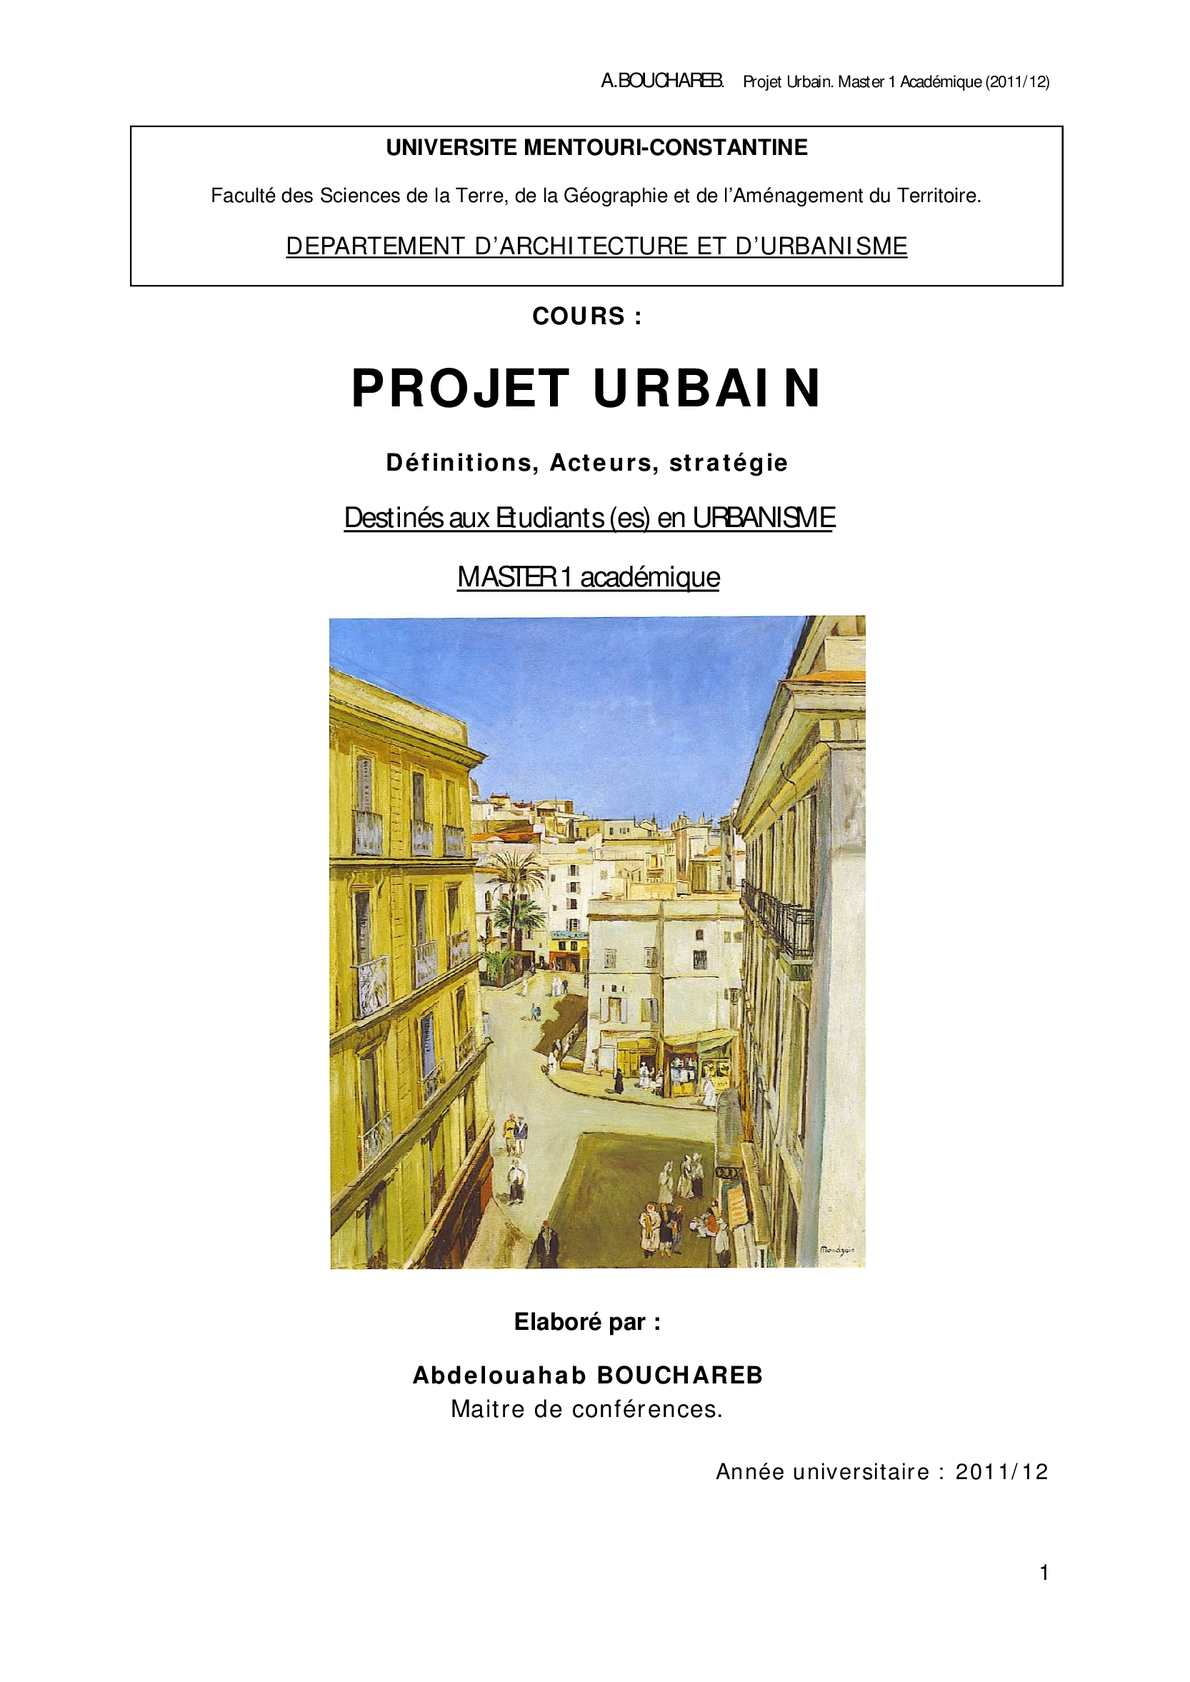 Cours Projet Urbain  Master 1 acad. Urbanisme A.BOUCHAREB